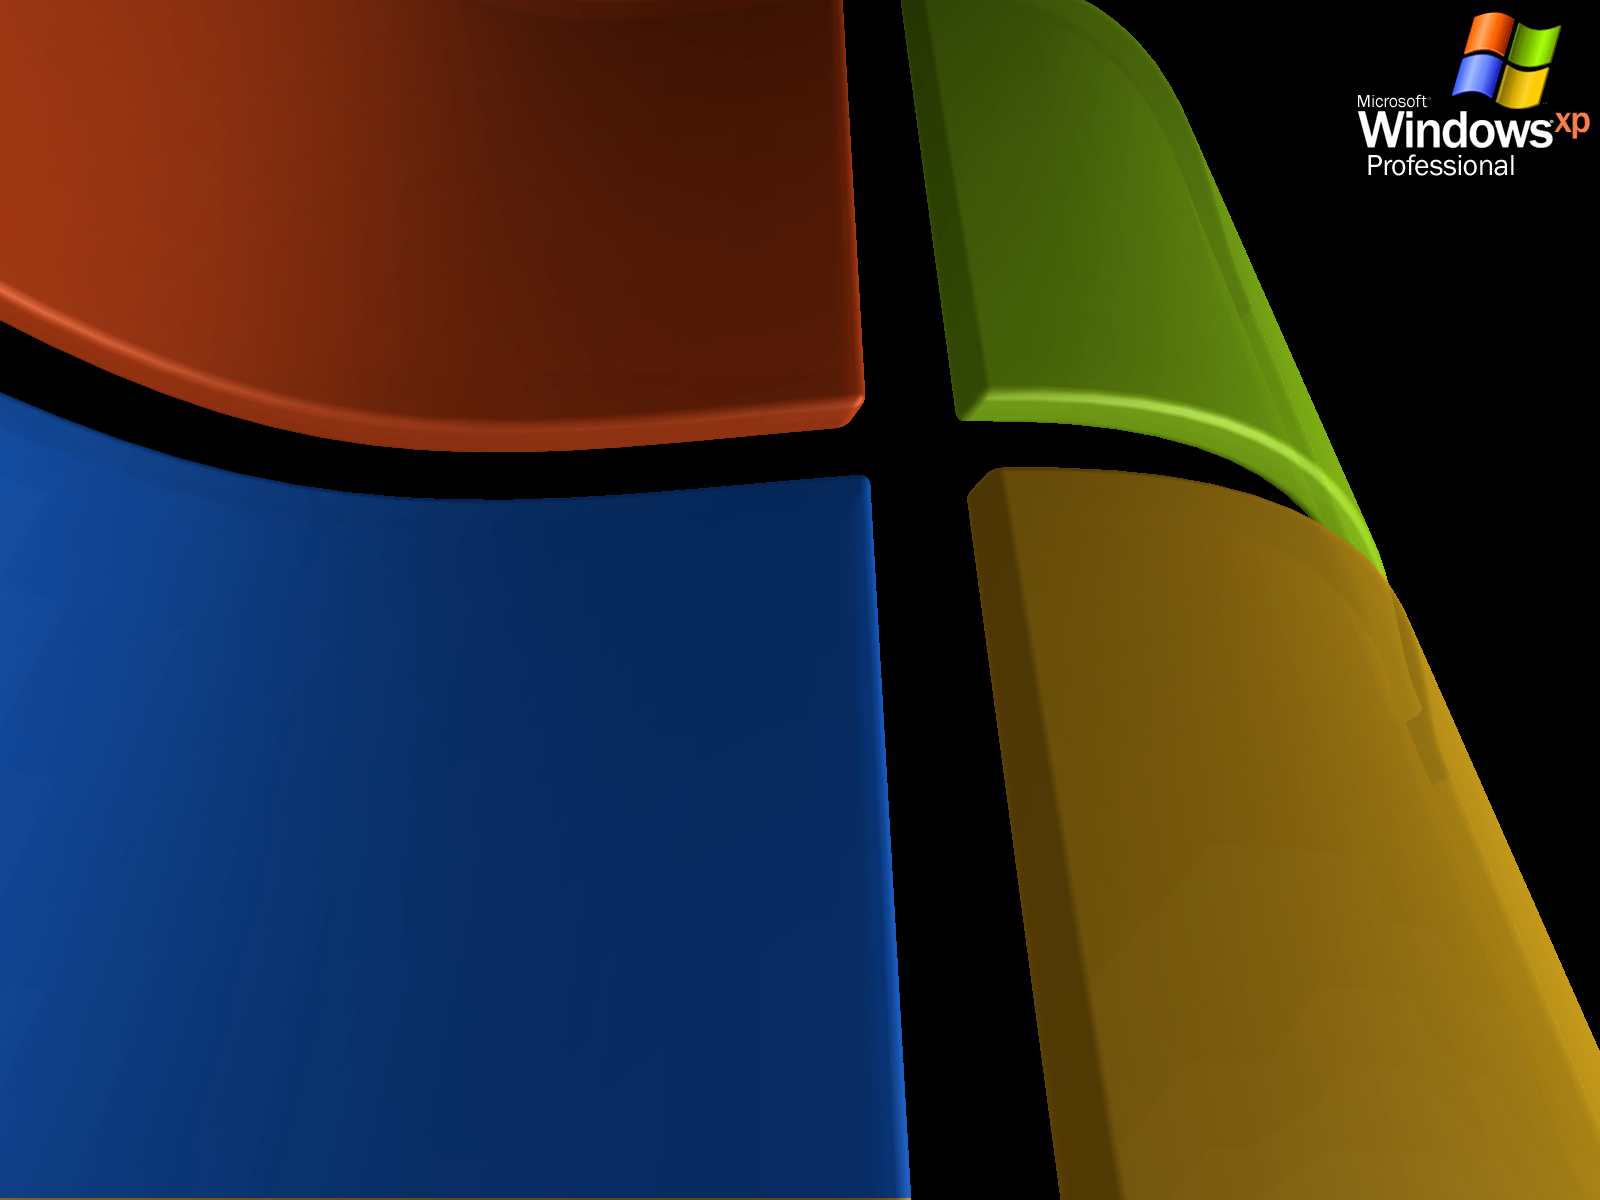 Windows xp pro live wallpaper